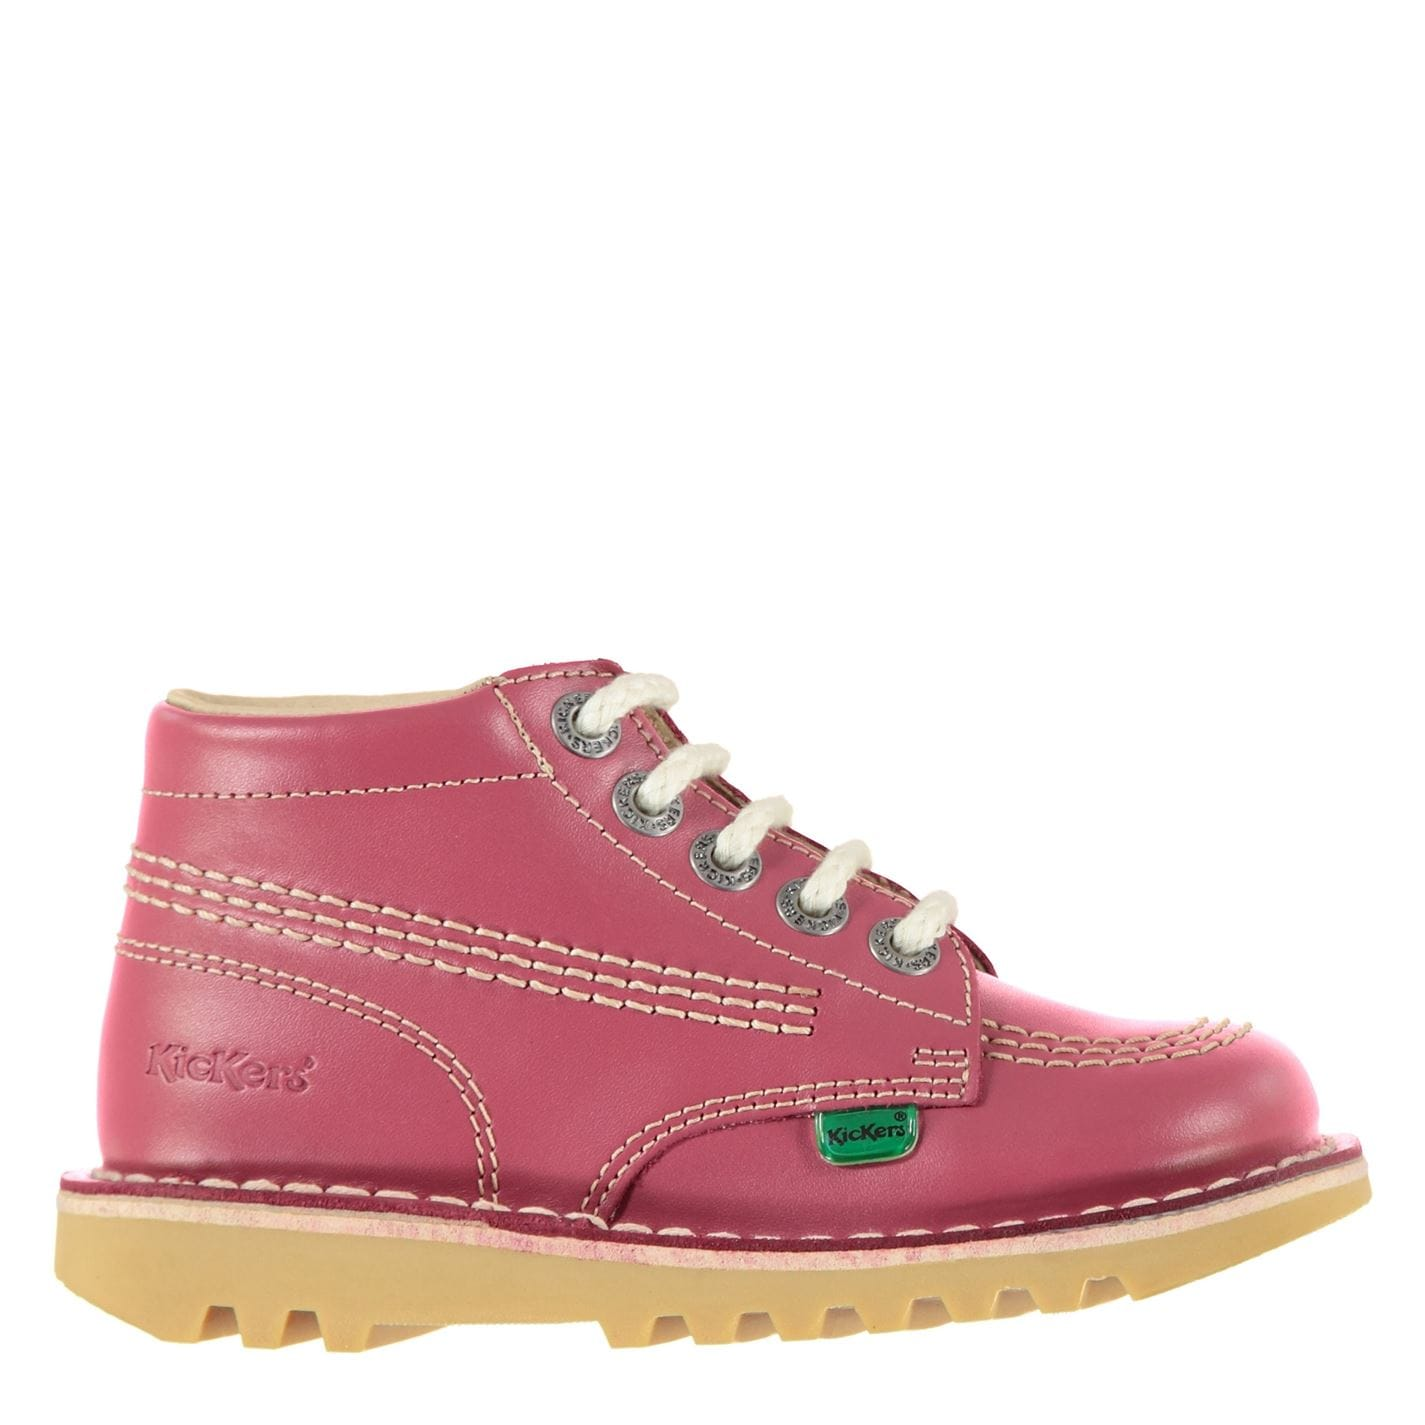 Kickers Kickers Infants Hi Boots Pink Leather